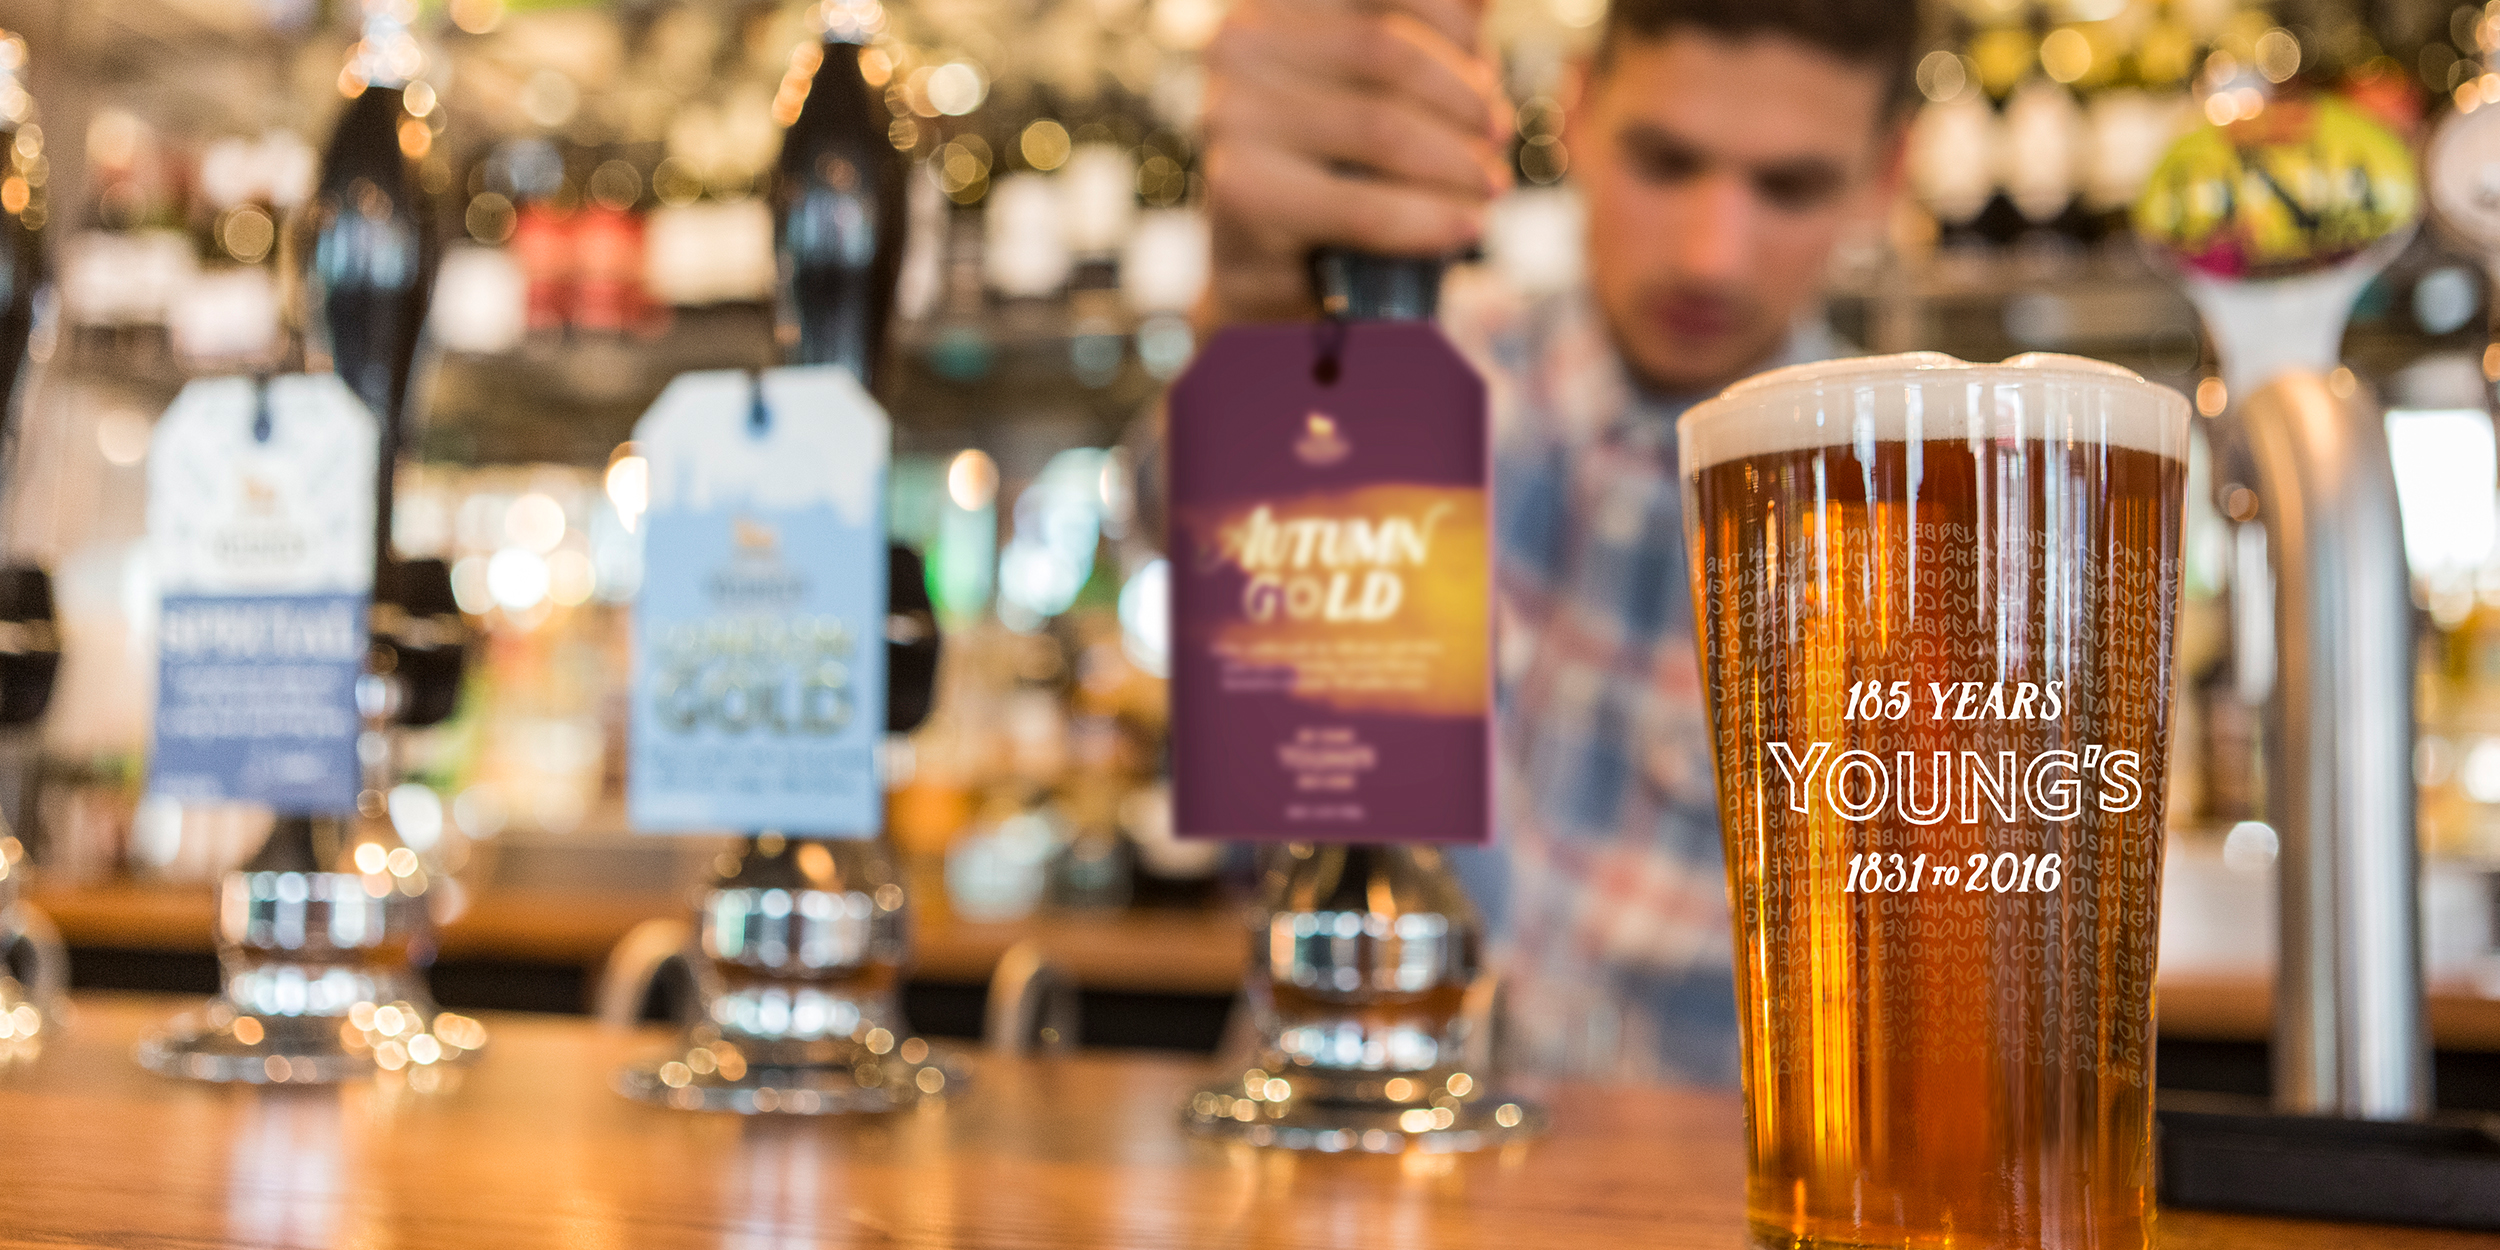 Young's Day commemorative pint glass on bar with Autumn Gold beermat in the background on bar tap